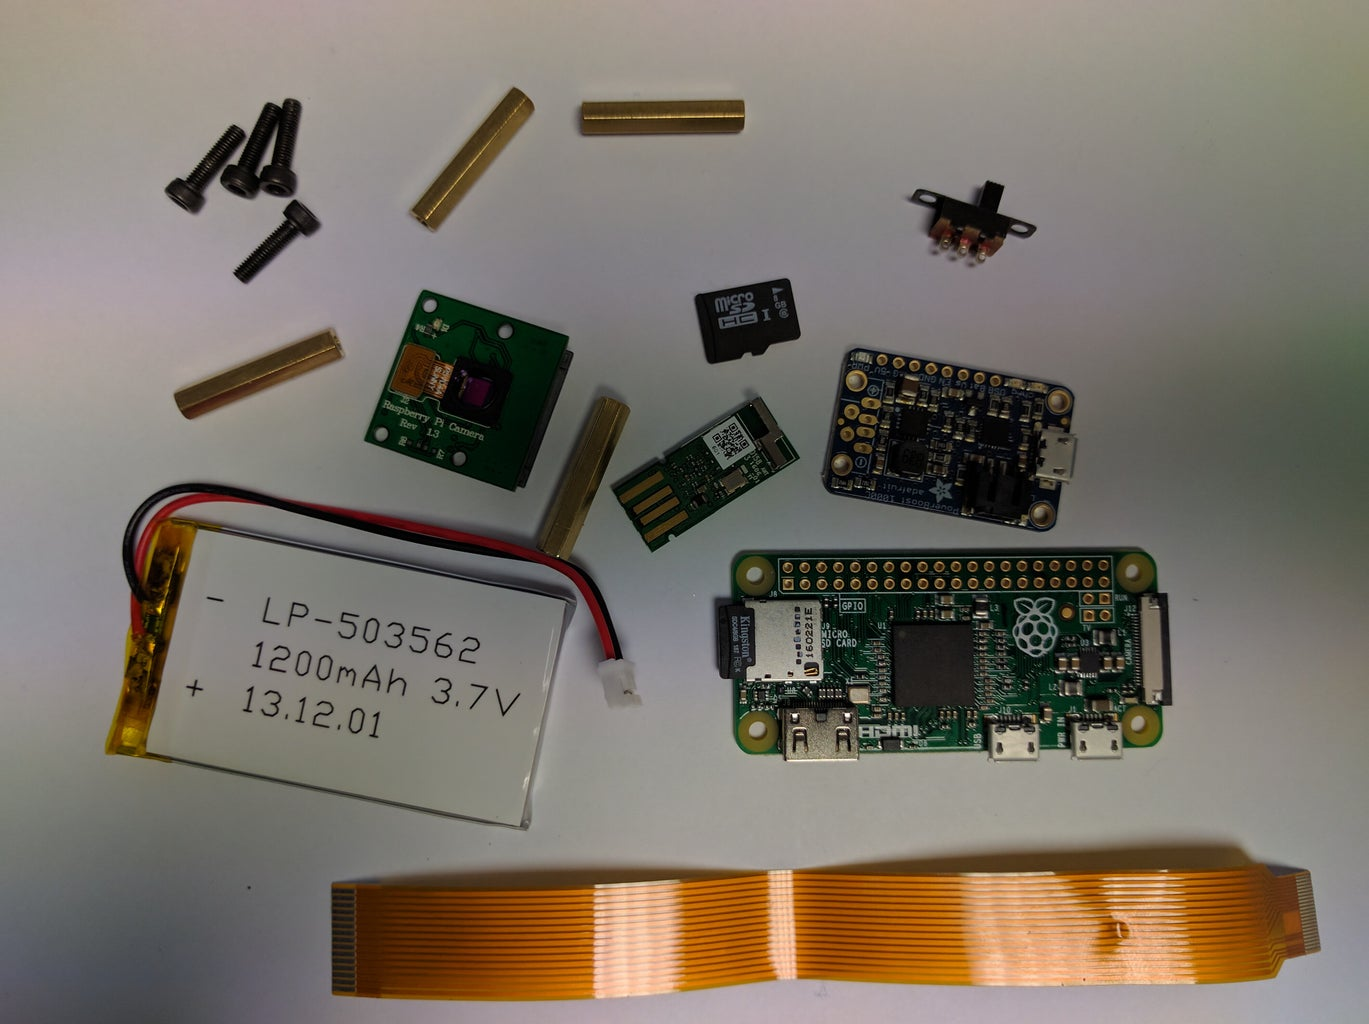 Components.